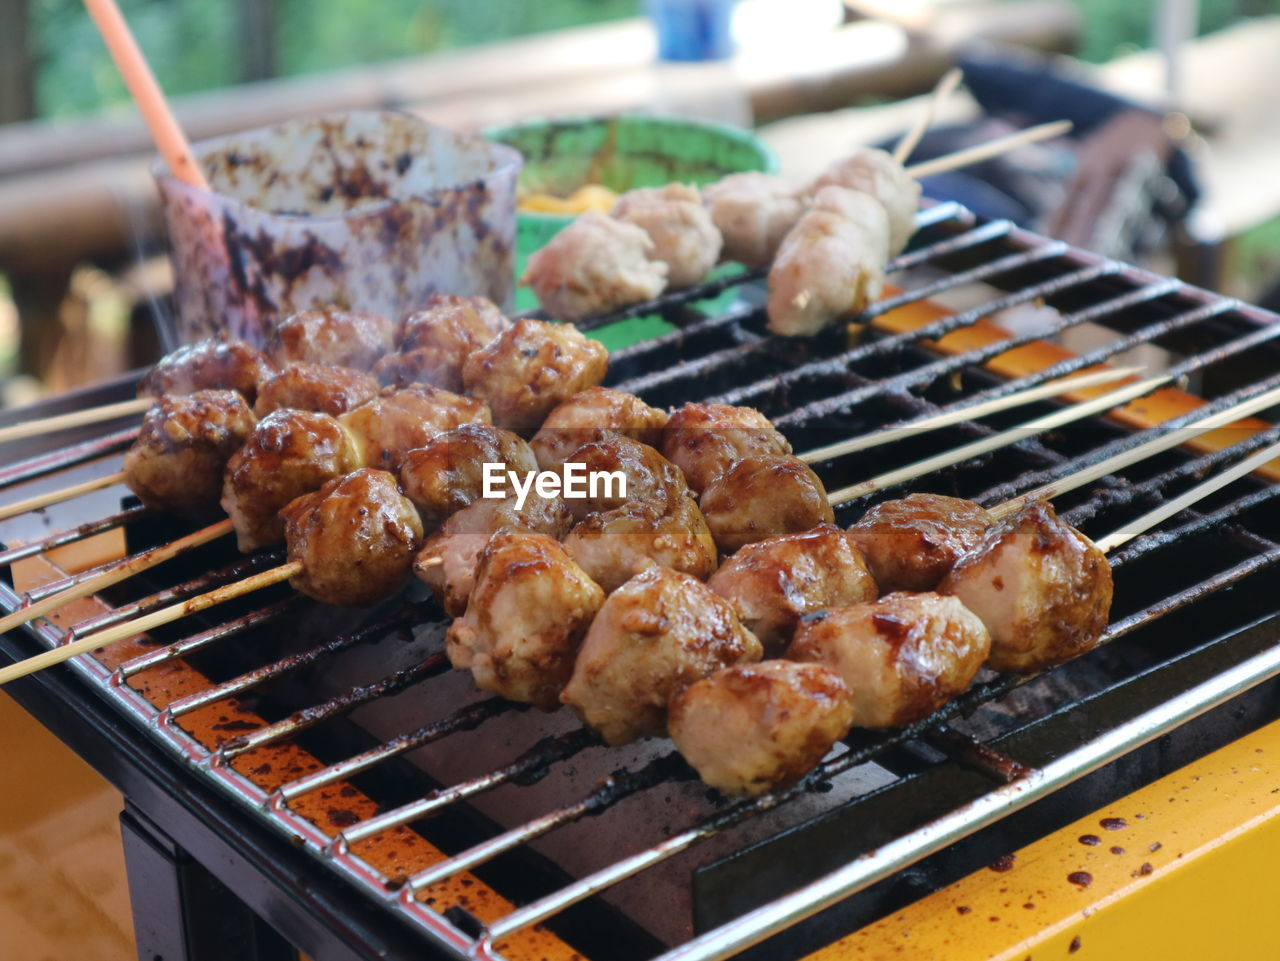 CLOSE-UP OF SEAFOOD ON BARBECUE GRILL